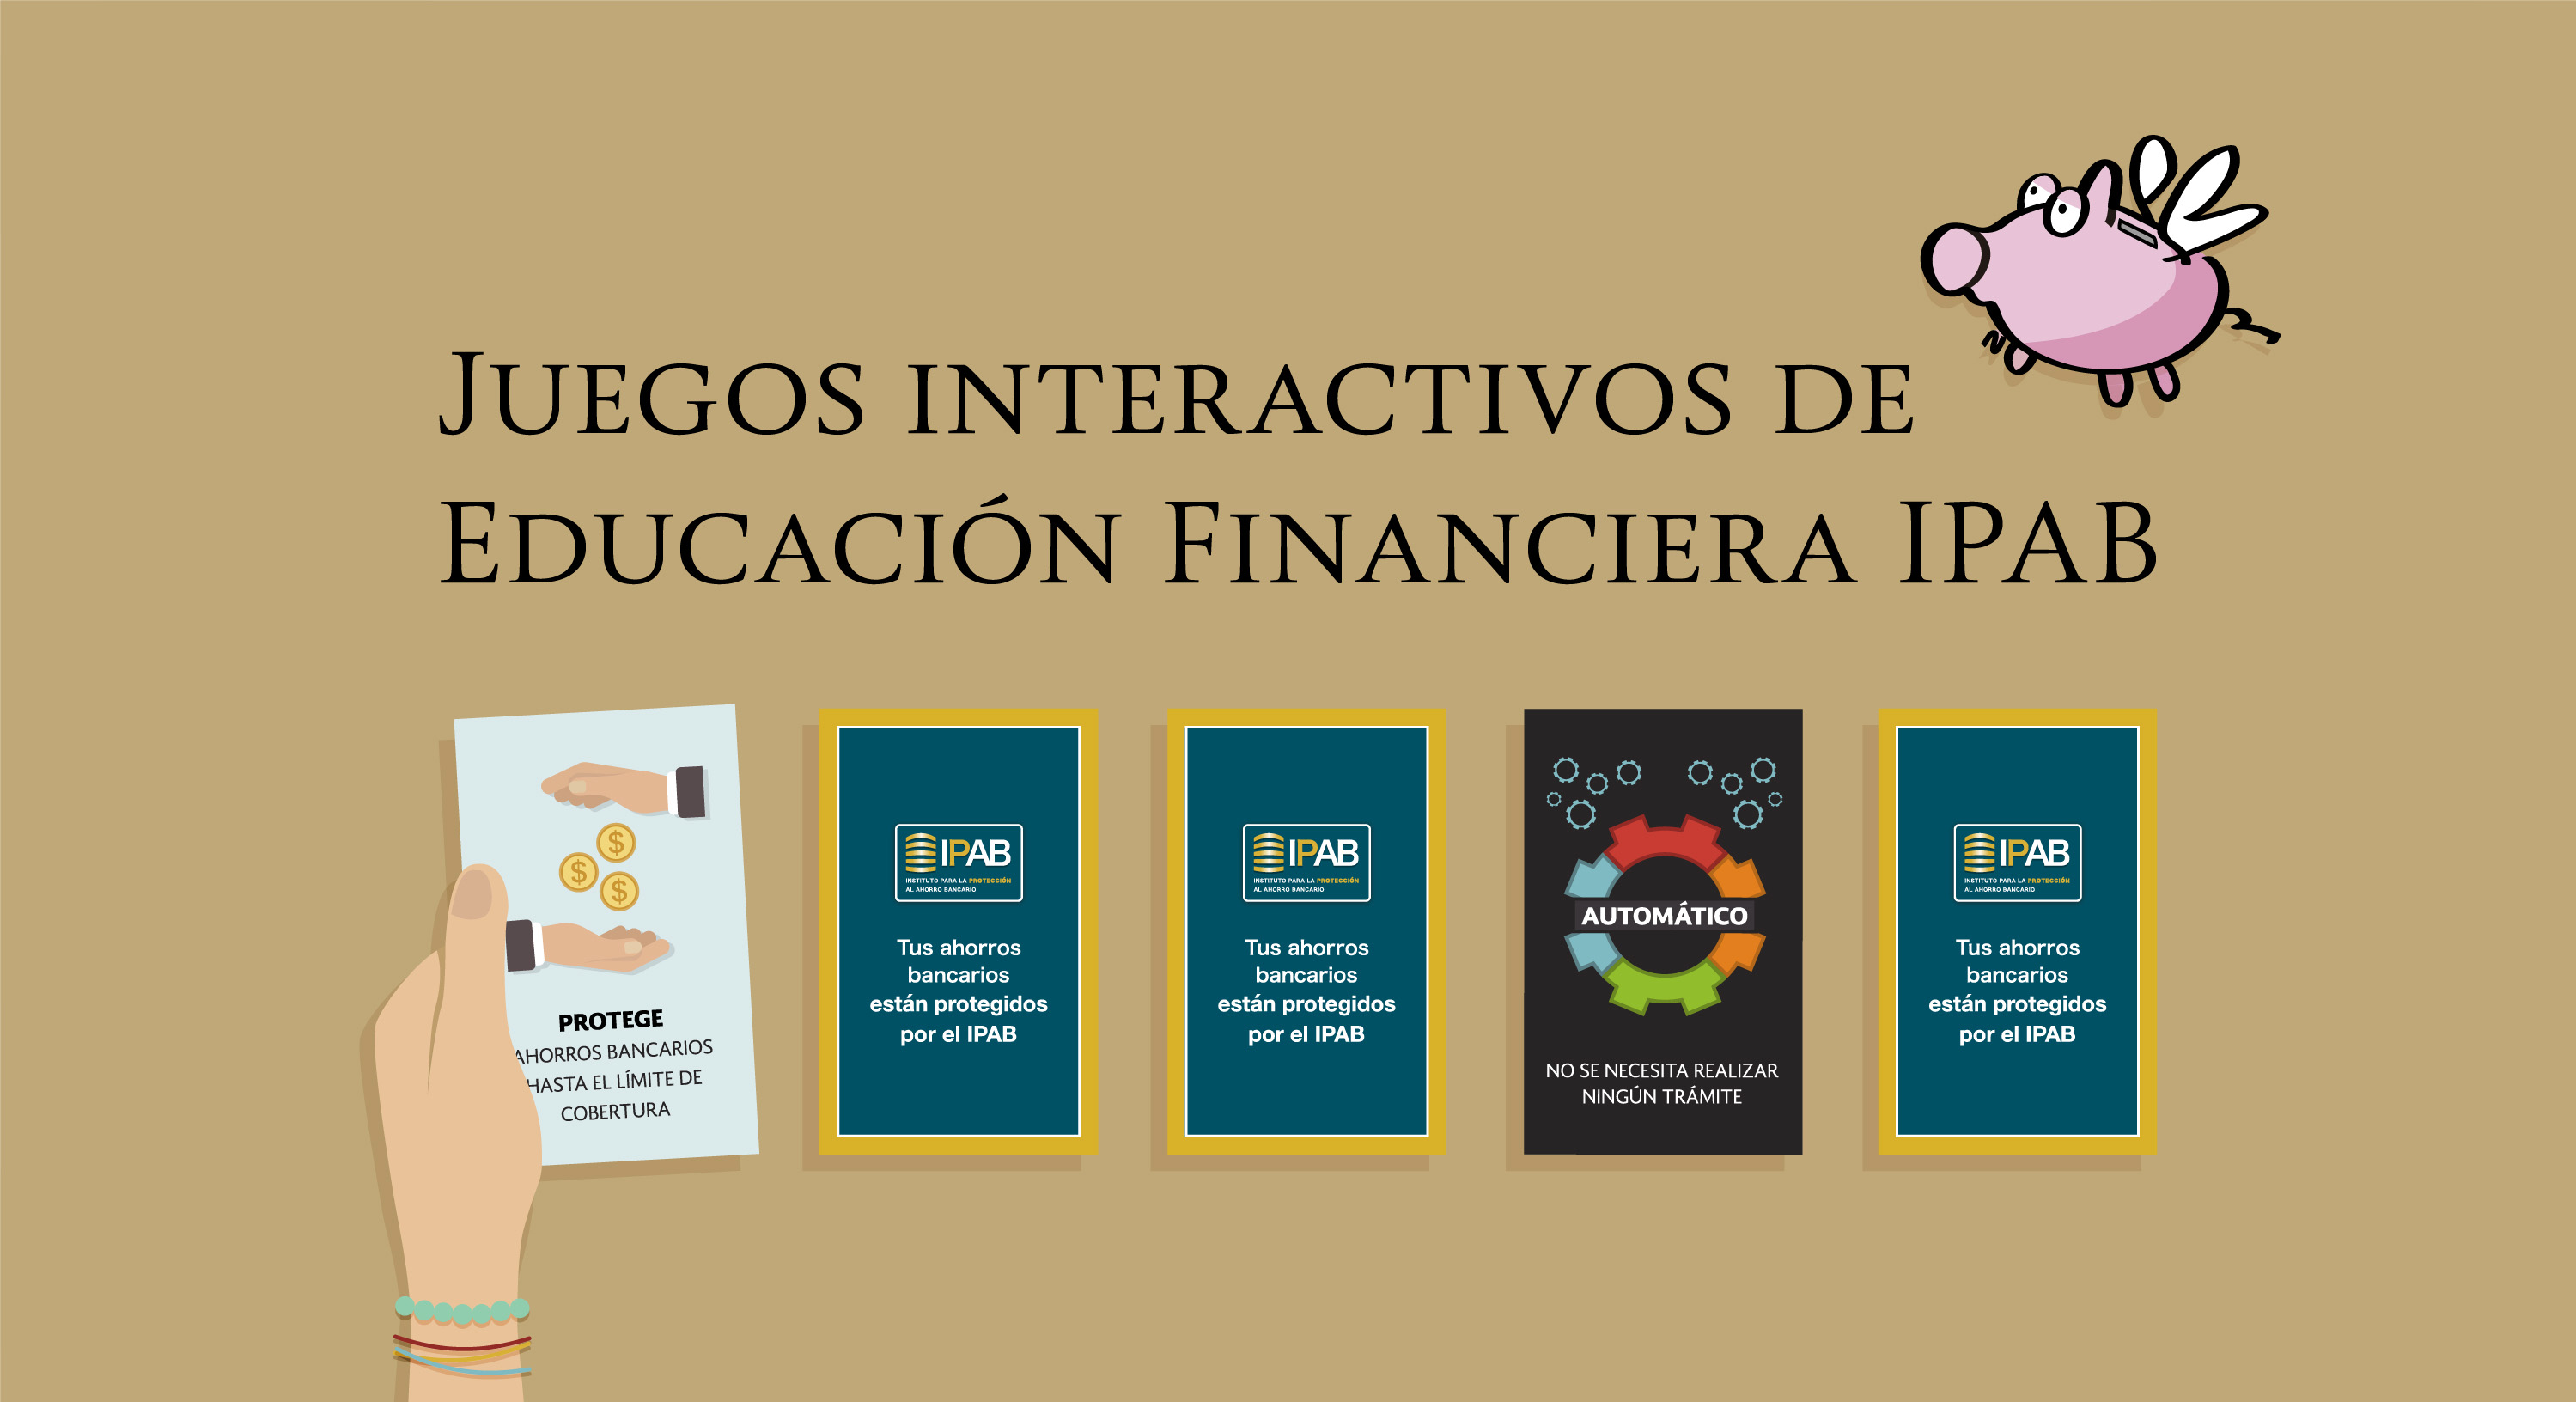 Juegos Interactivos De Educacion Financiera Ipab Instituto Para La